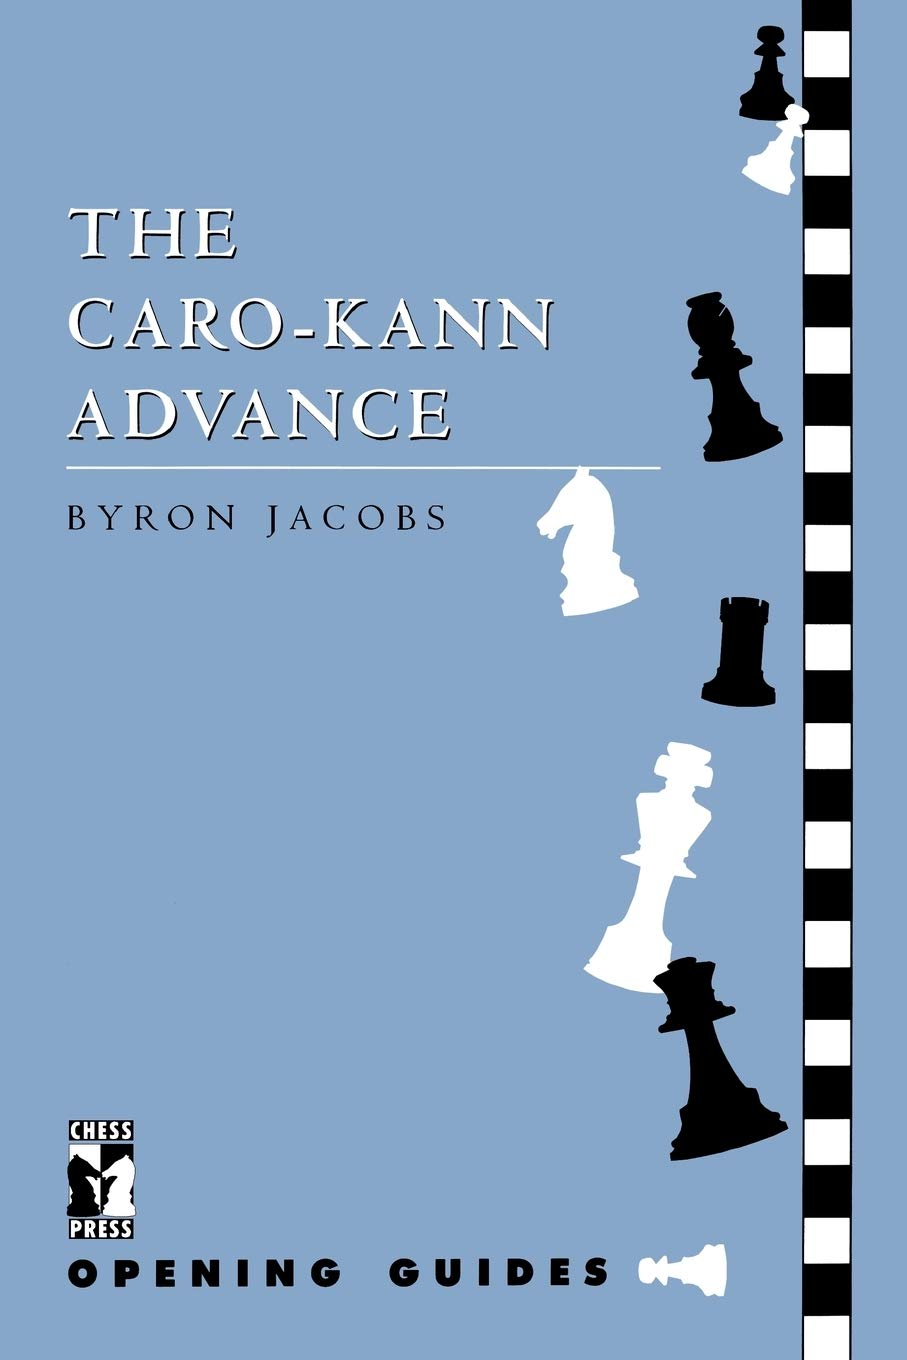 The Caro-Kann Advance (1997)